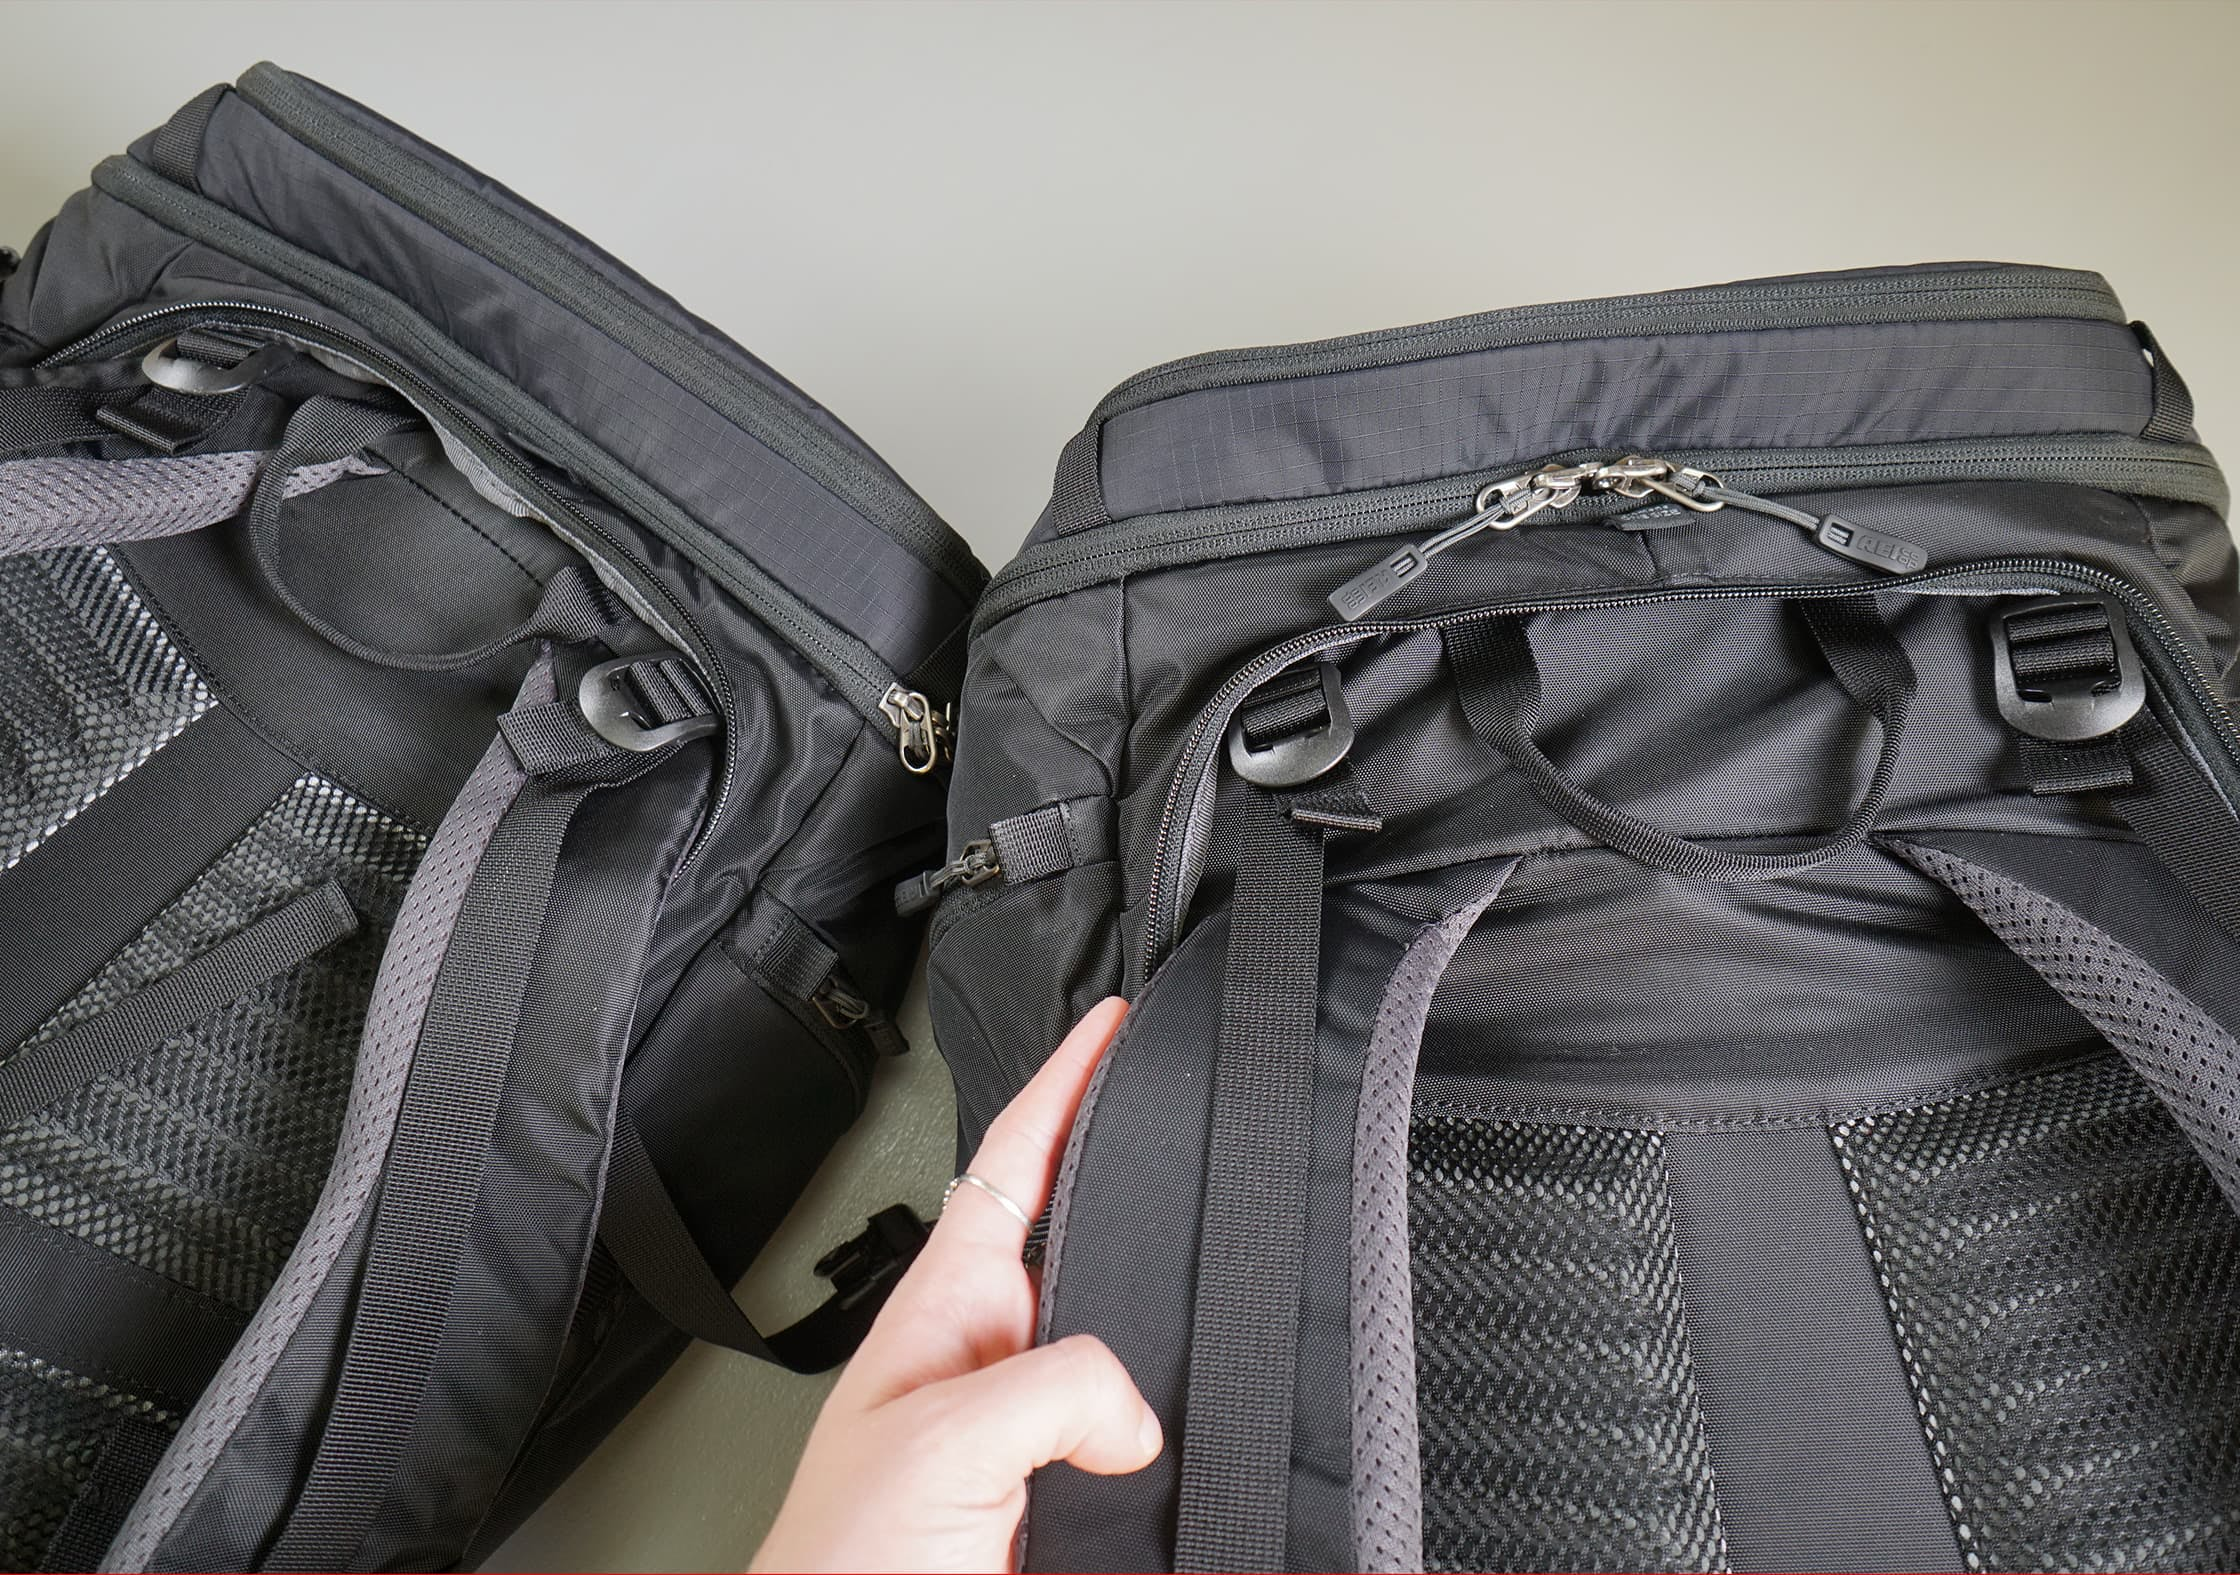 REI Ruckpack 40 Strap Difference (Left: Men's, Right: Women's)